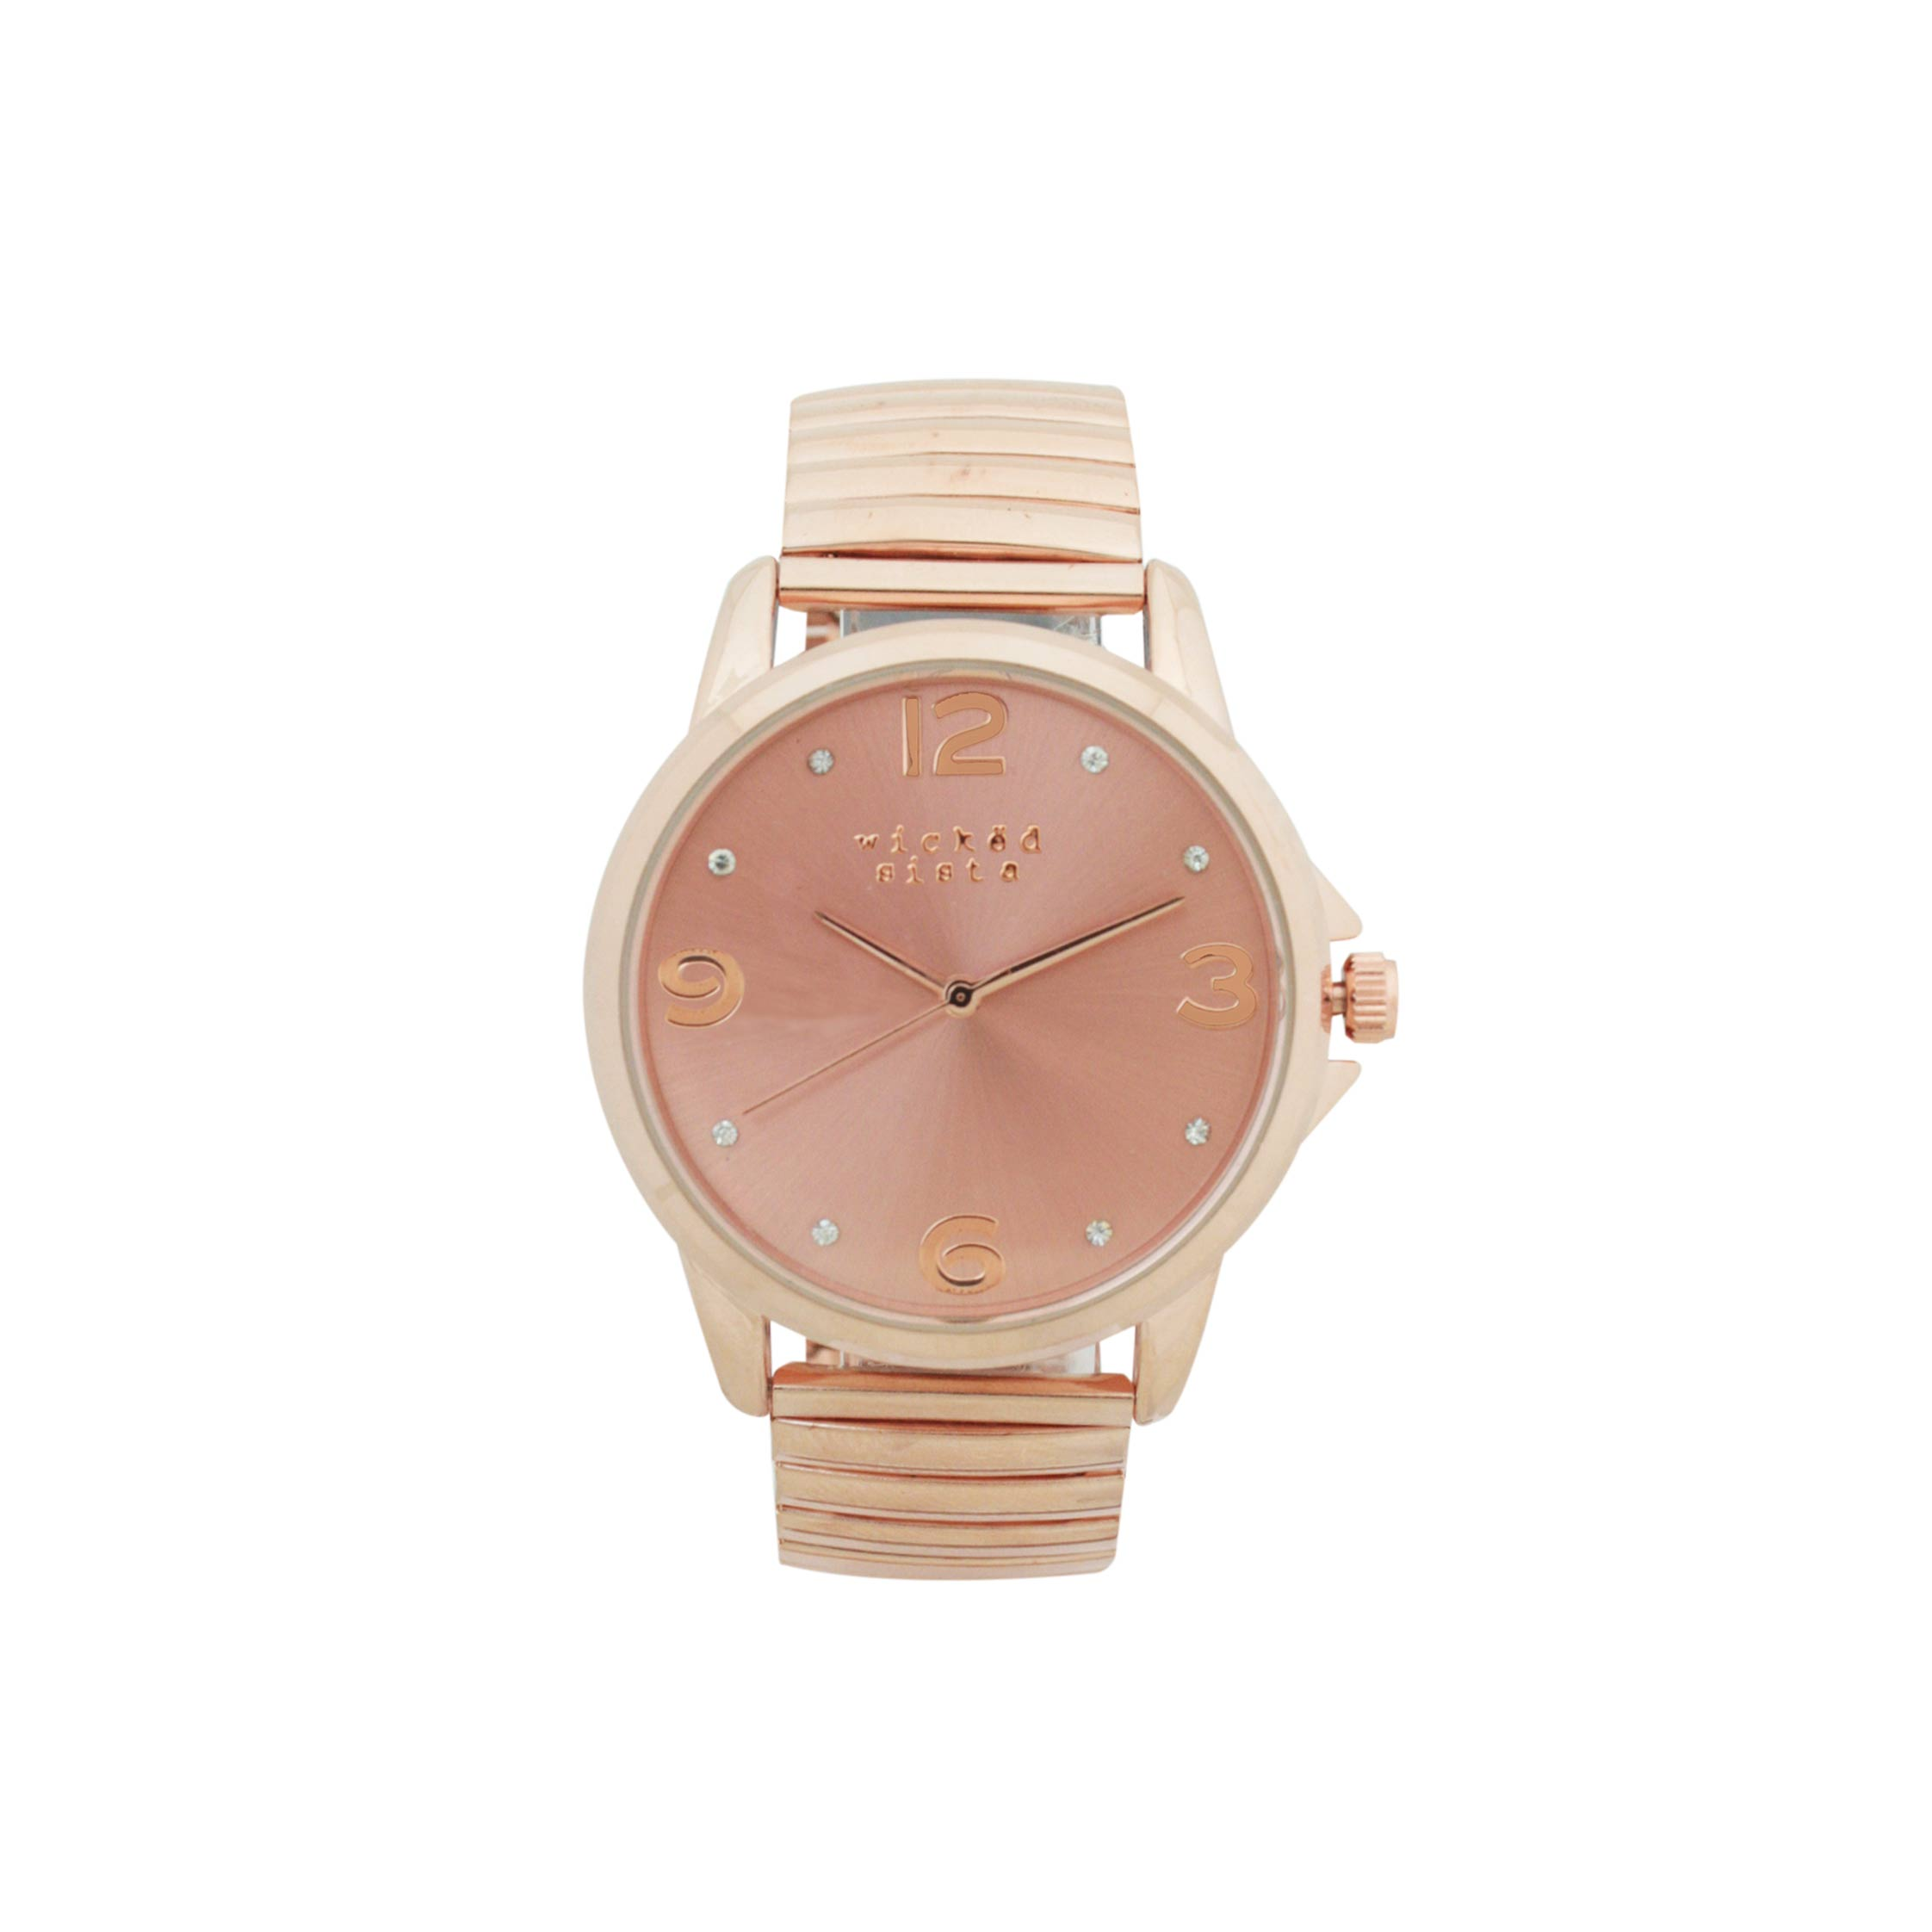 image kulani latte products classic original watch kinis silver watches steel peach stainless